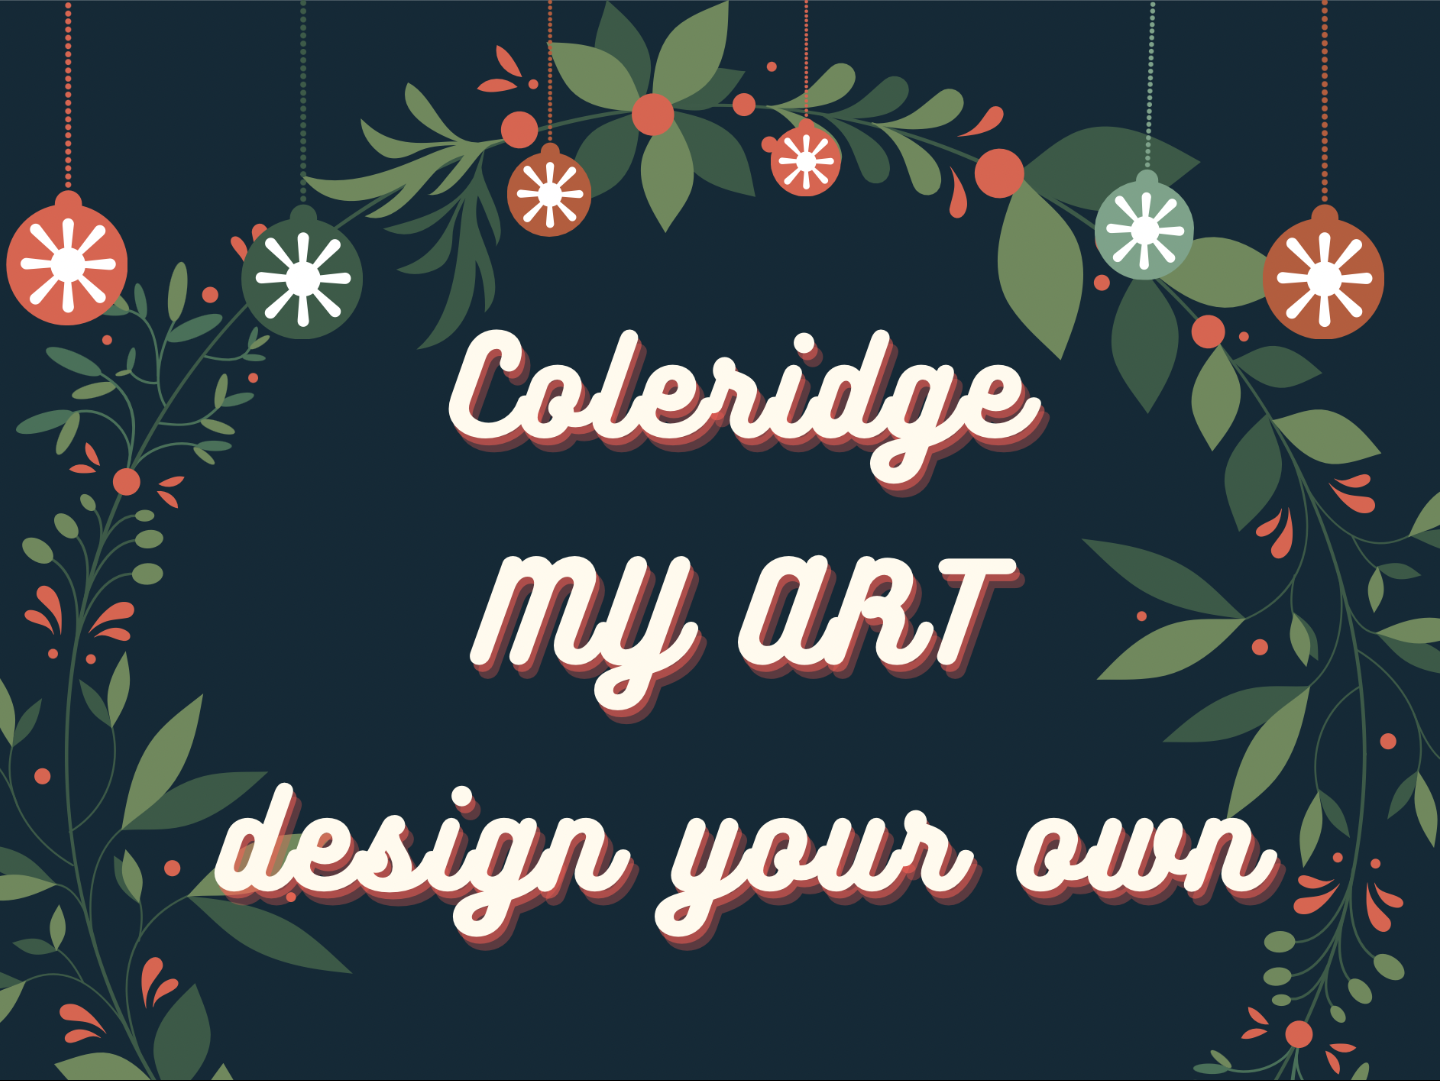 My Art - Design Your Own Products